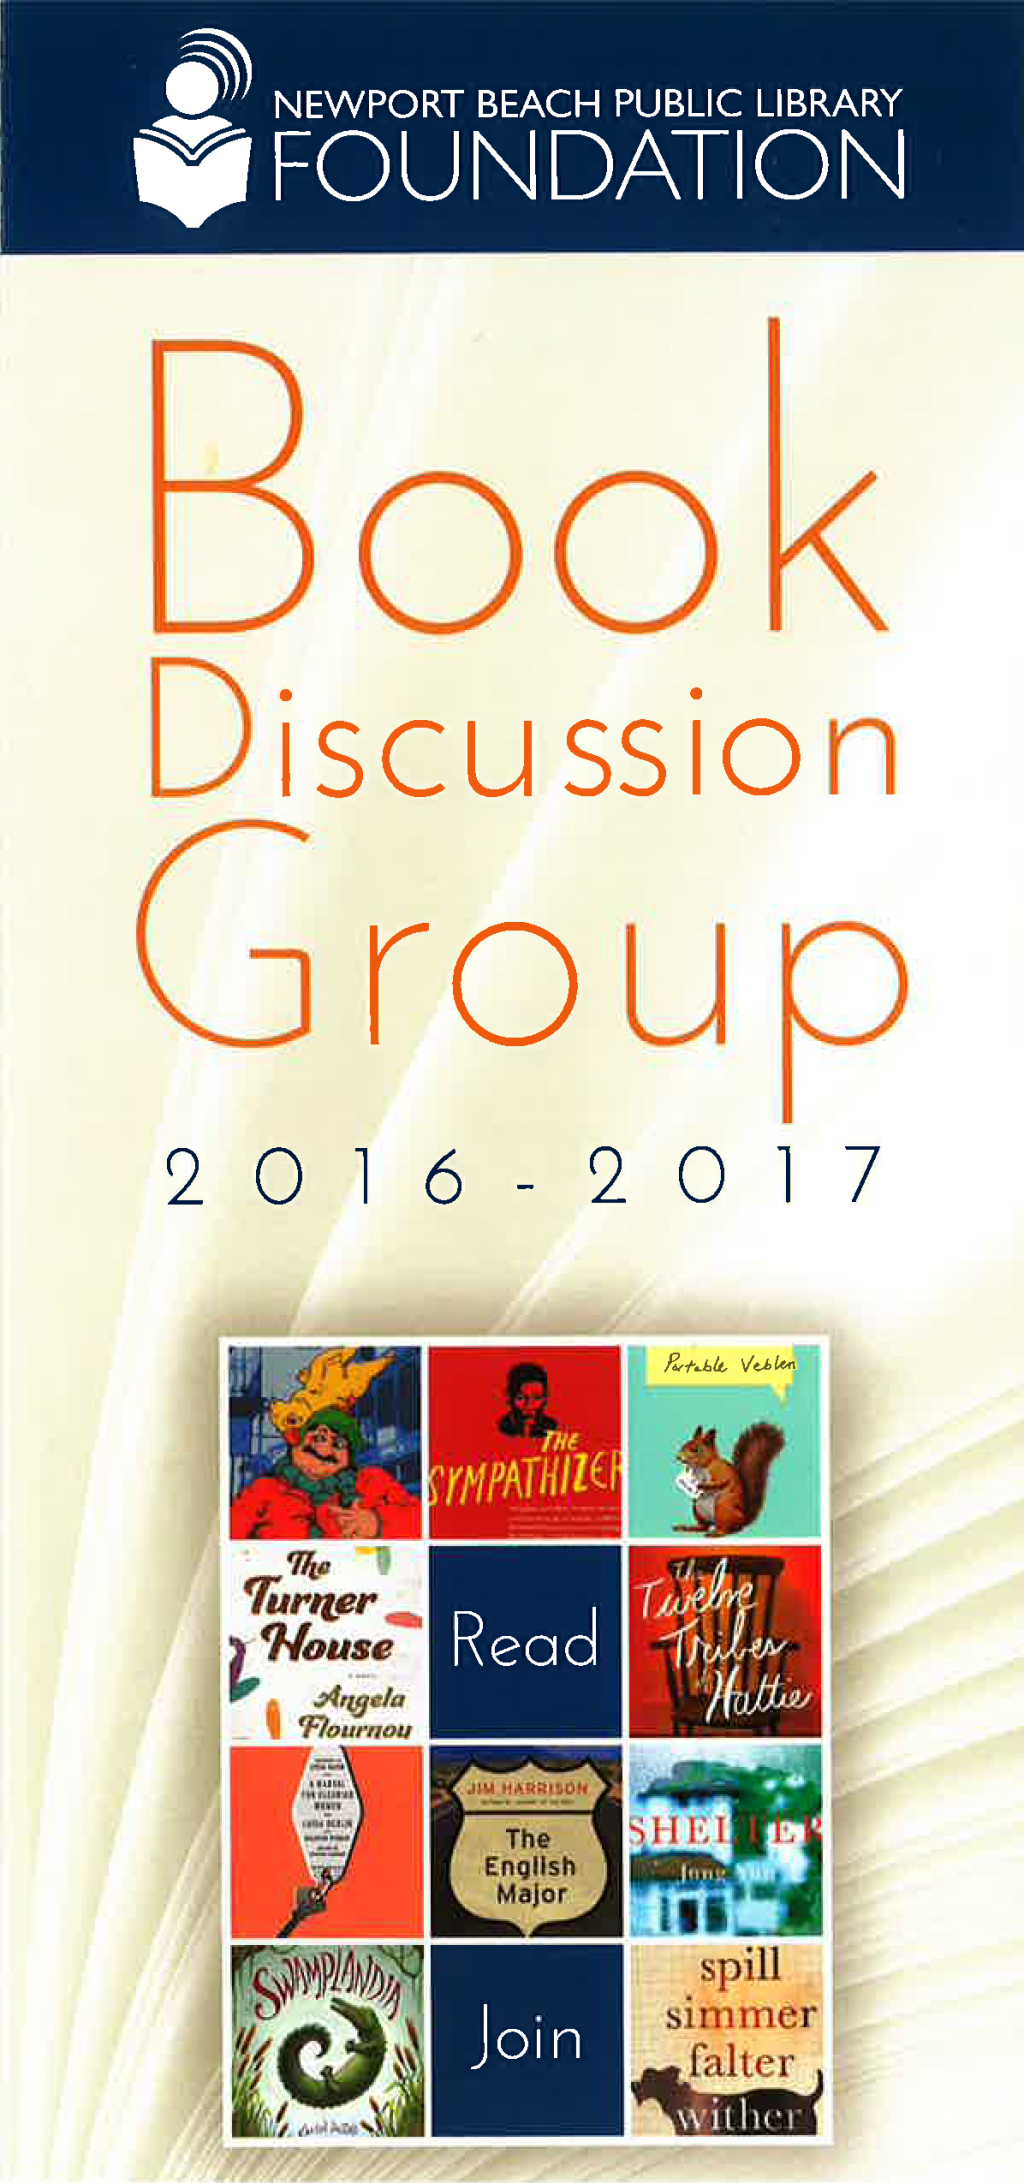 Book discussion group brochure